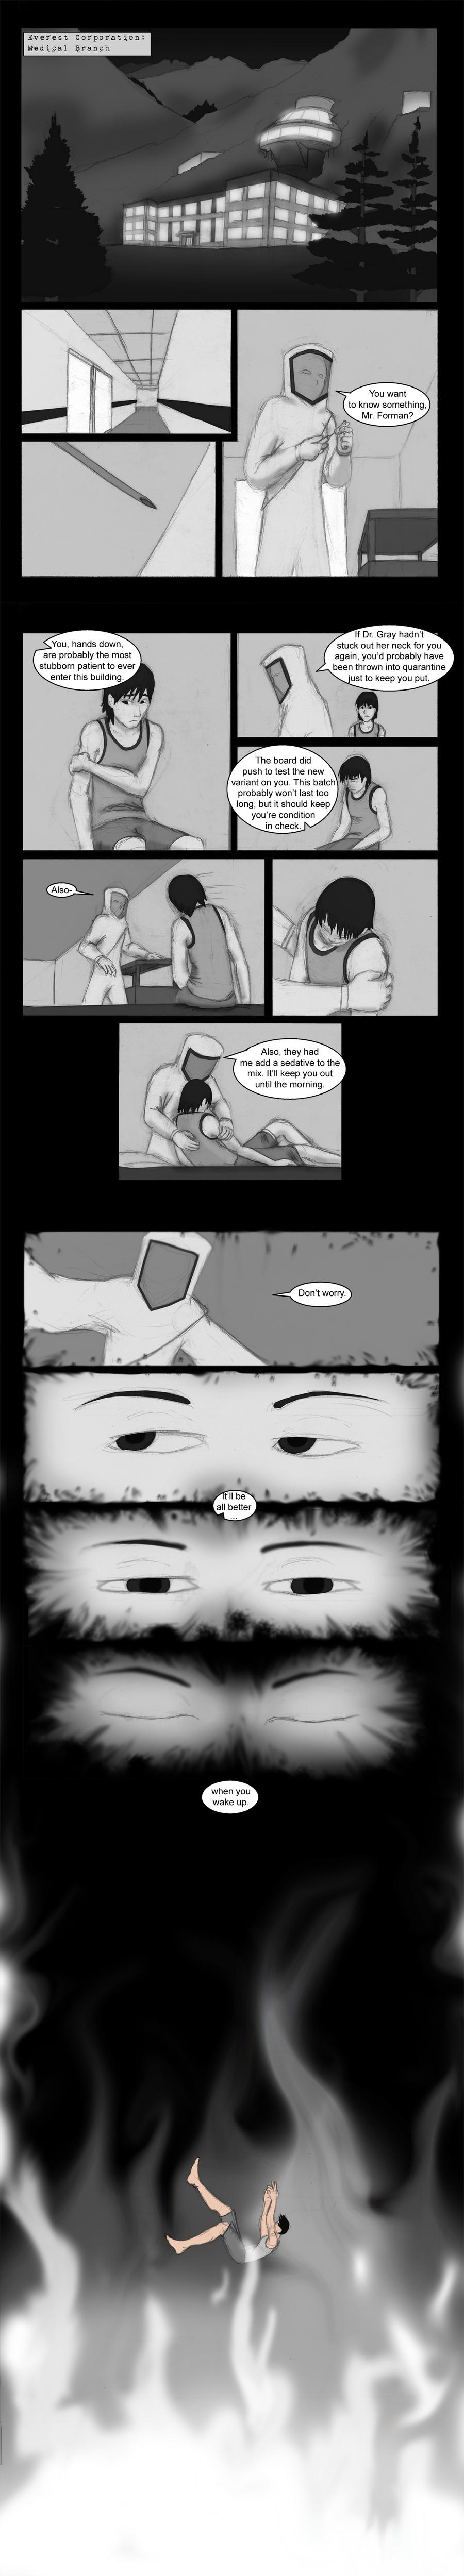 Wisp: Audition Page 2 by Dancing-Sword